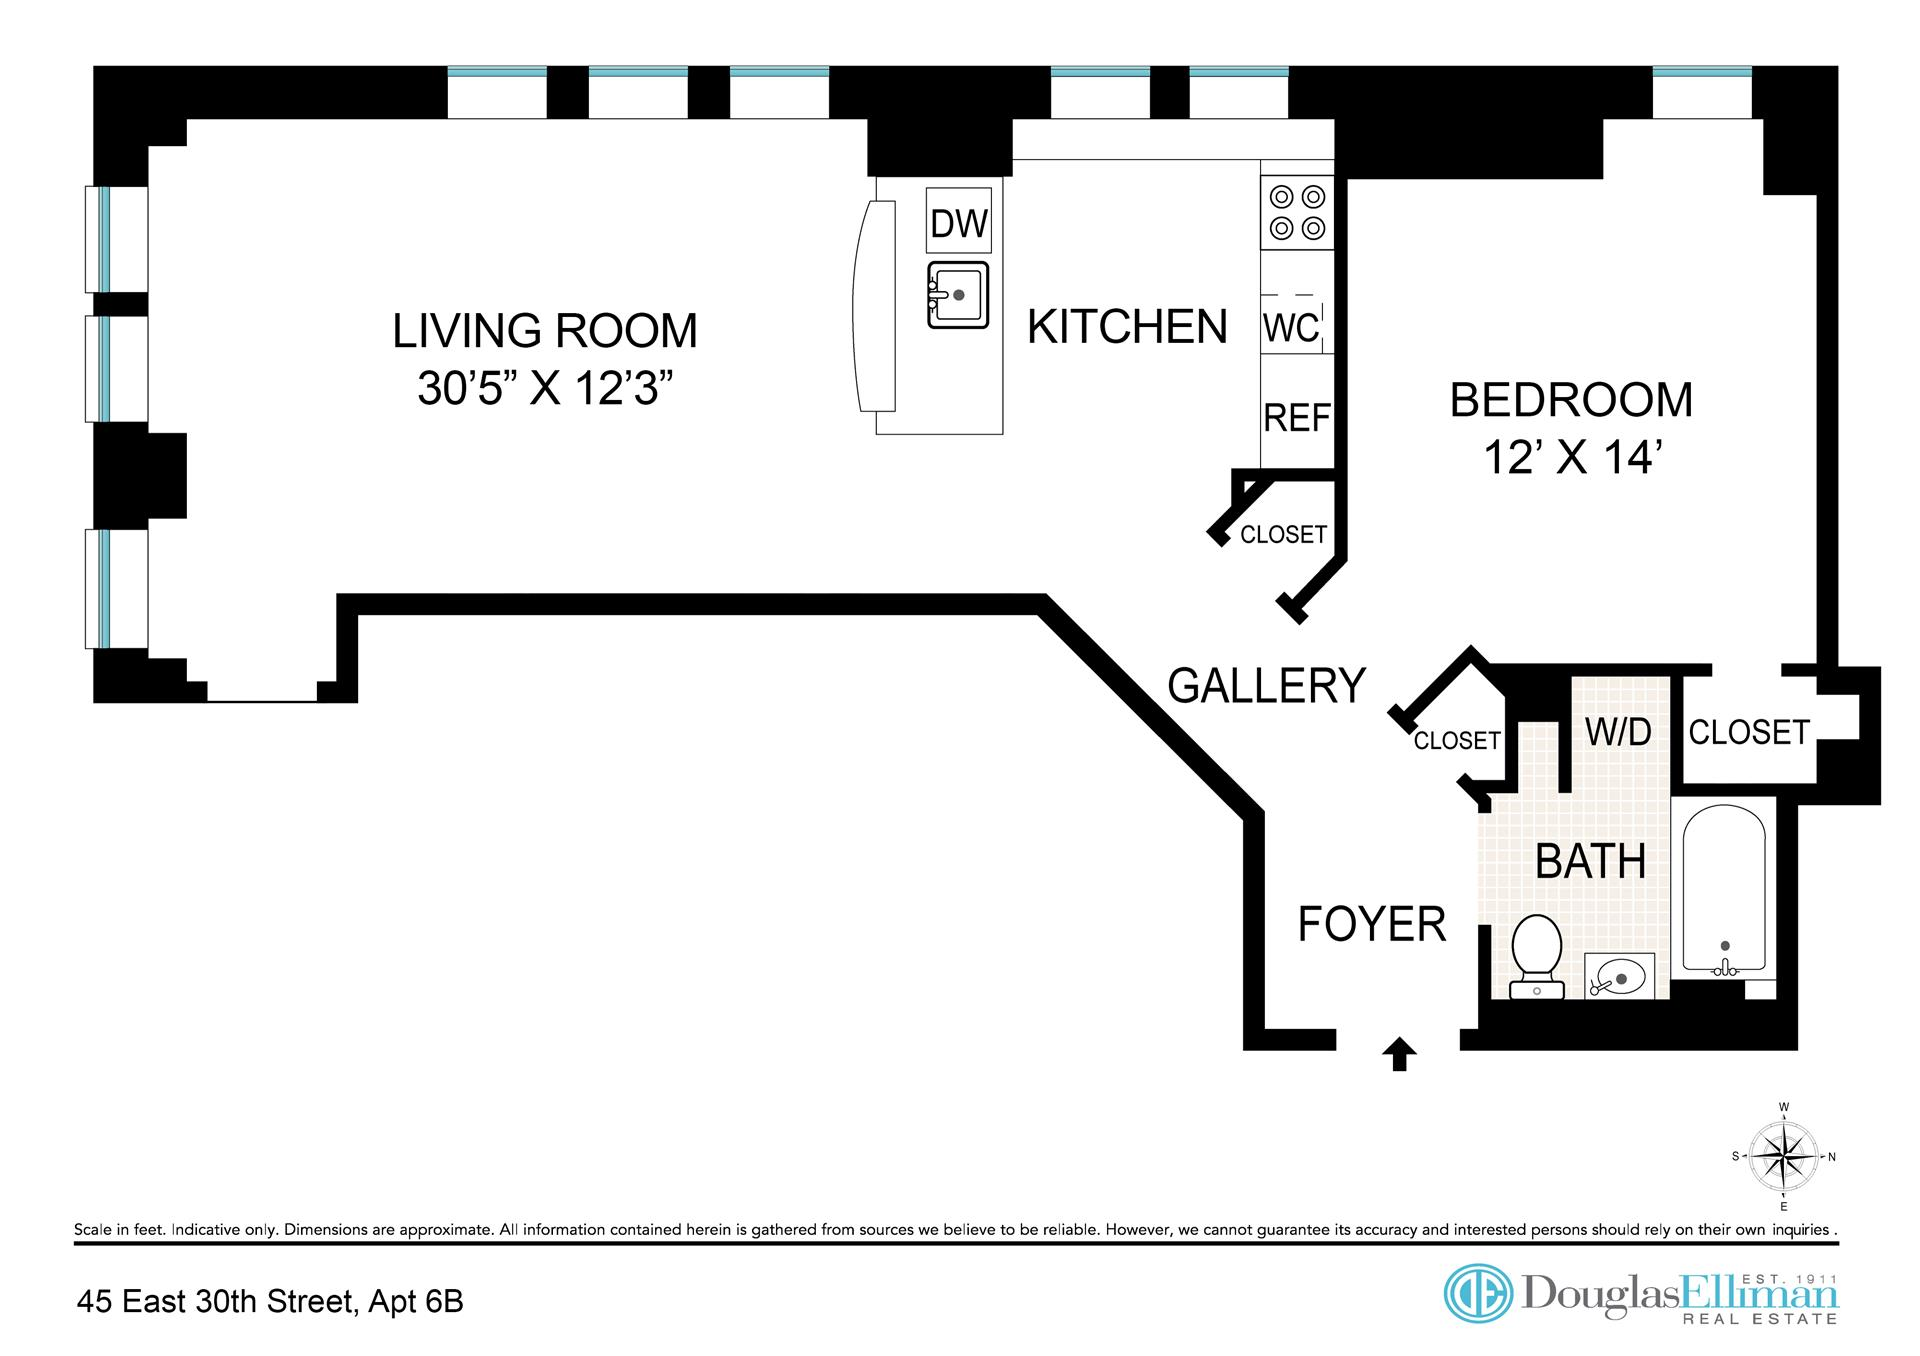 Floor plan of Park South Lofts, 45 East 30th St, 6B - Flatiron District, New York